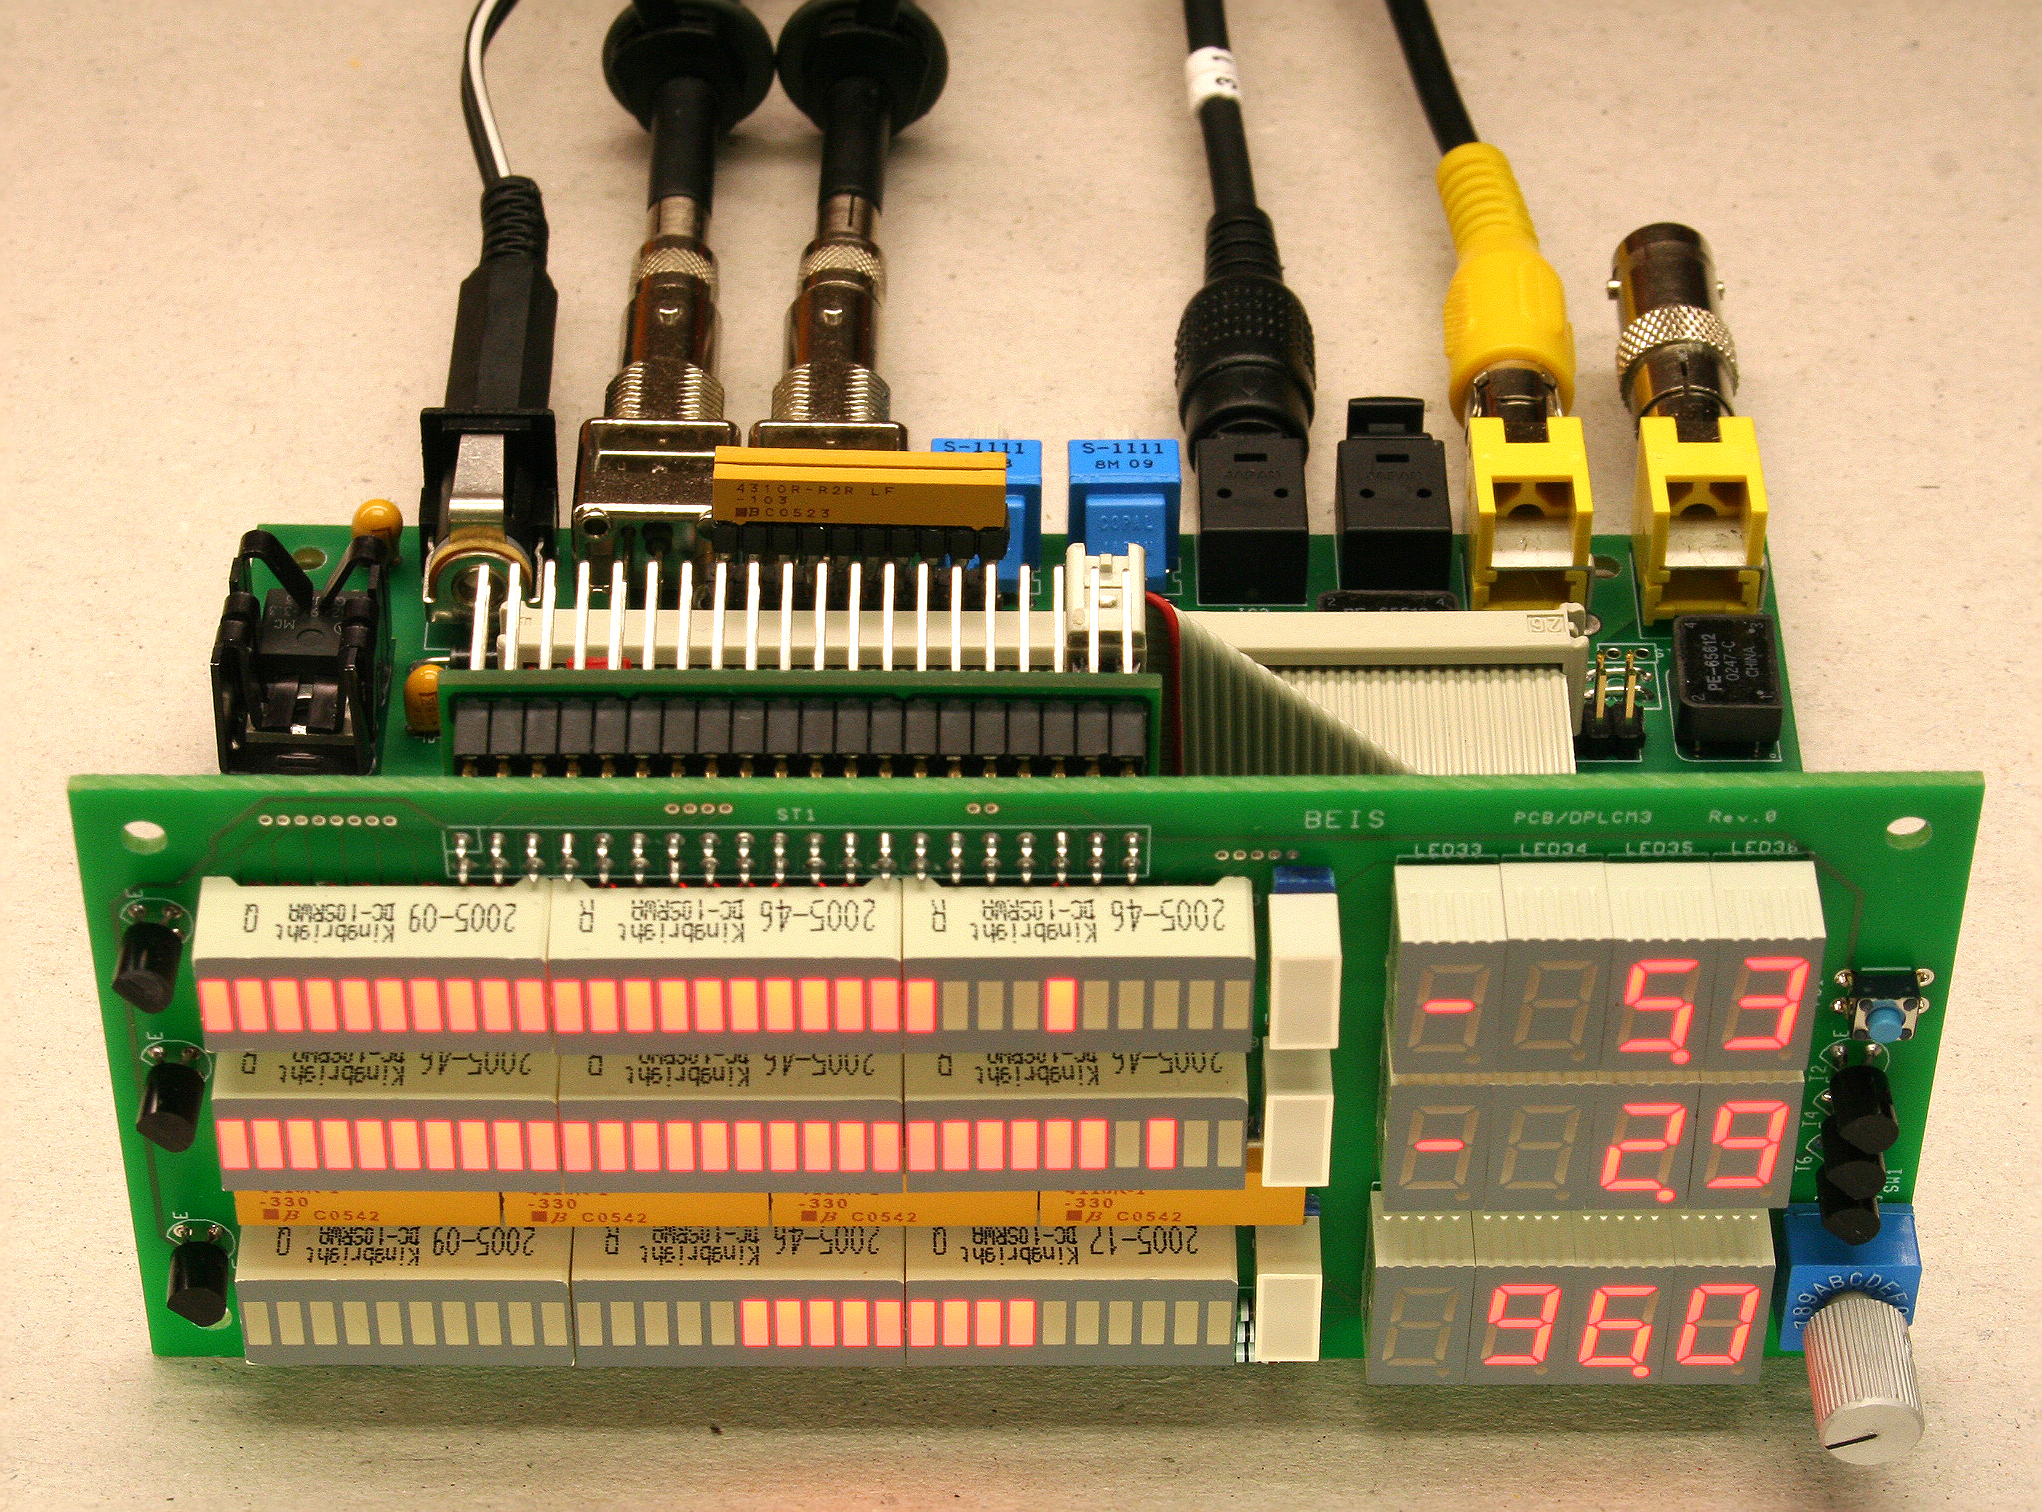 An FPGA-Based Peak Audio Level and Correlation Meter with S/PDIF Inputs